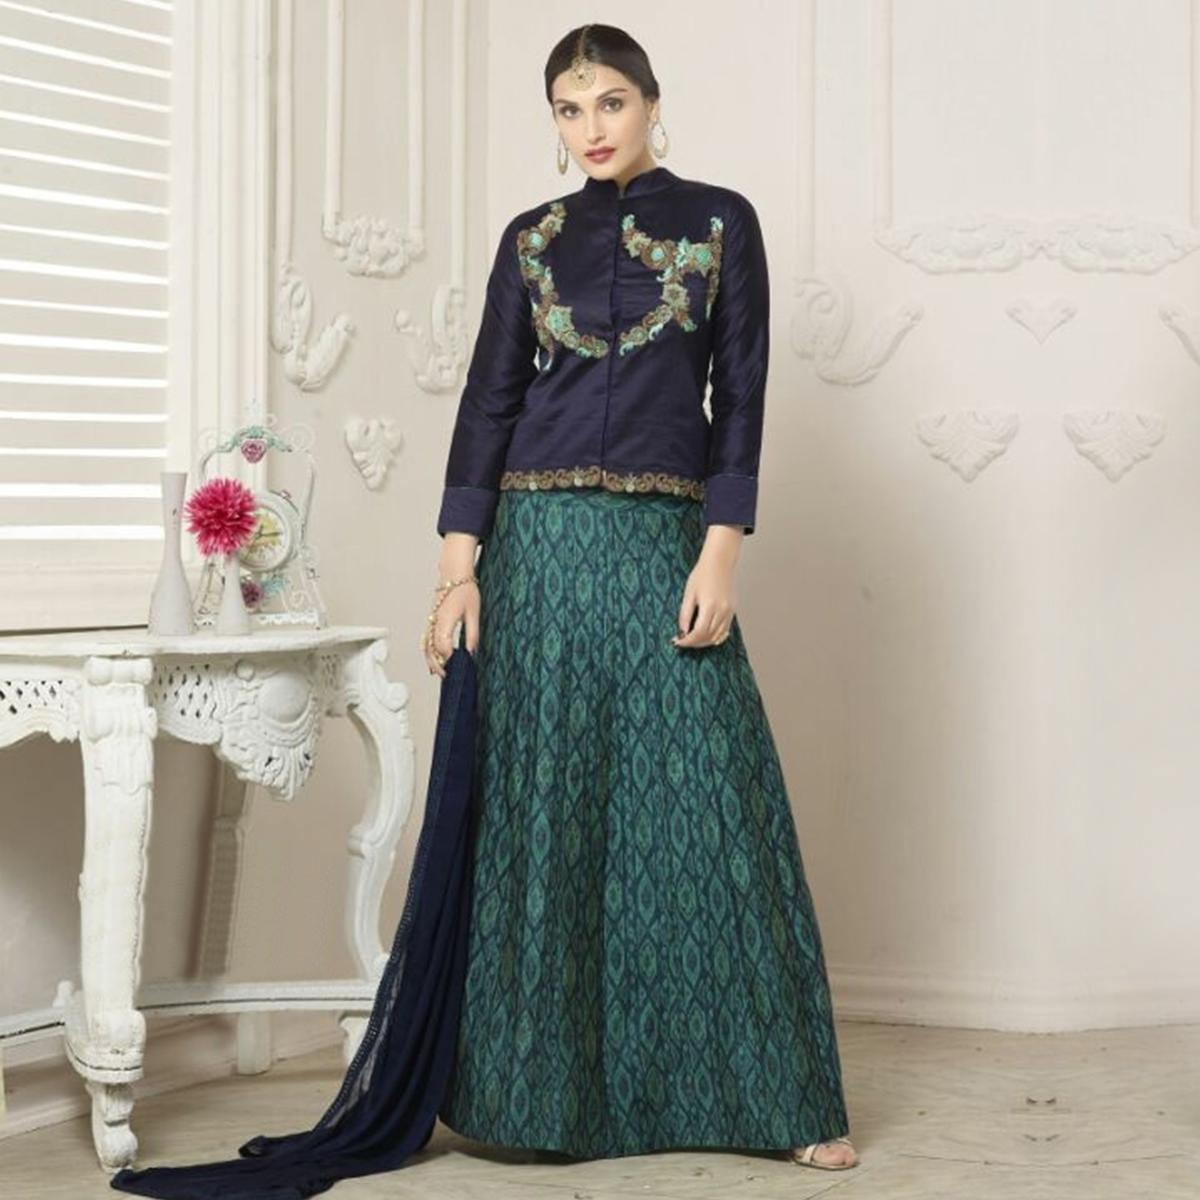 Green Lehenga with Full Sleeves Choli